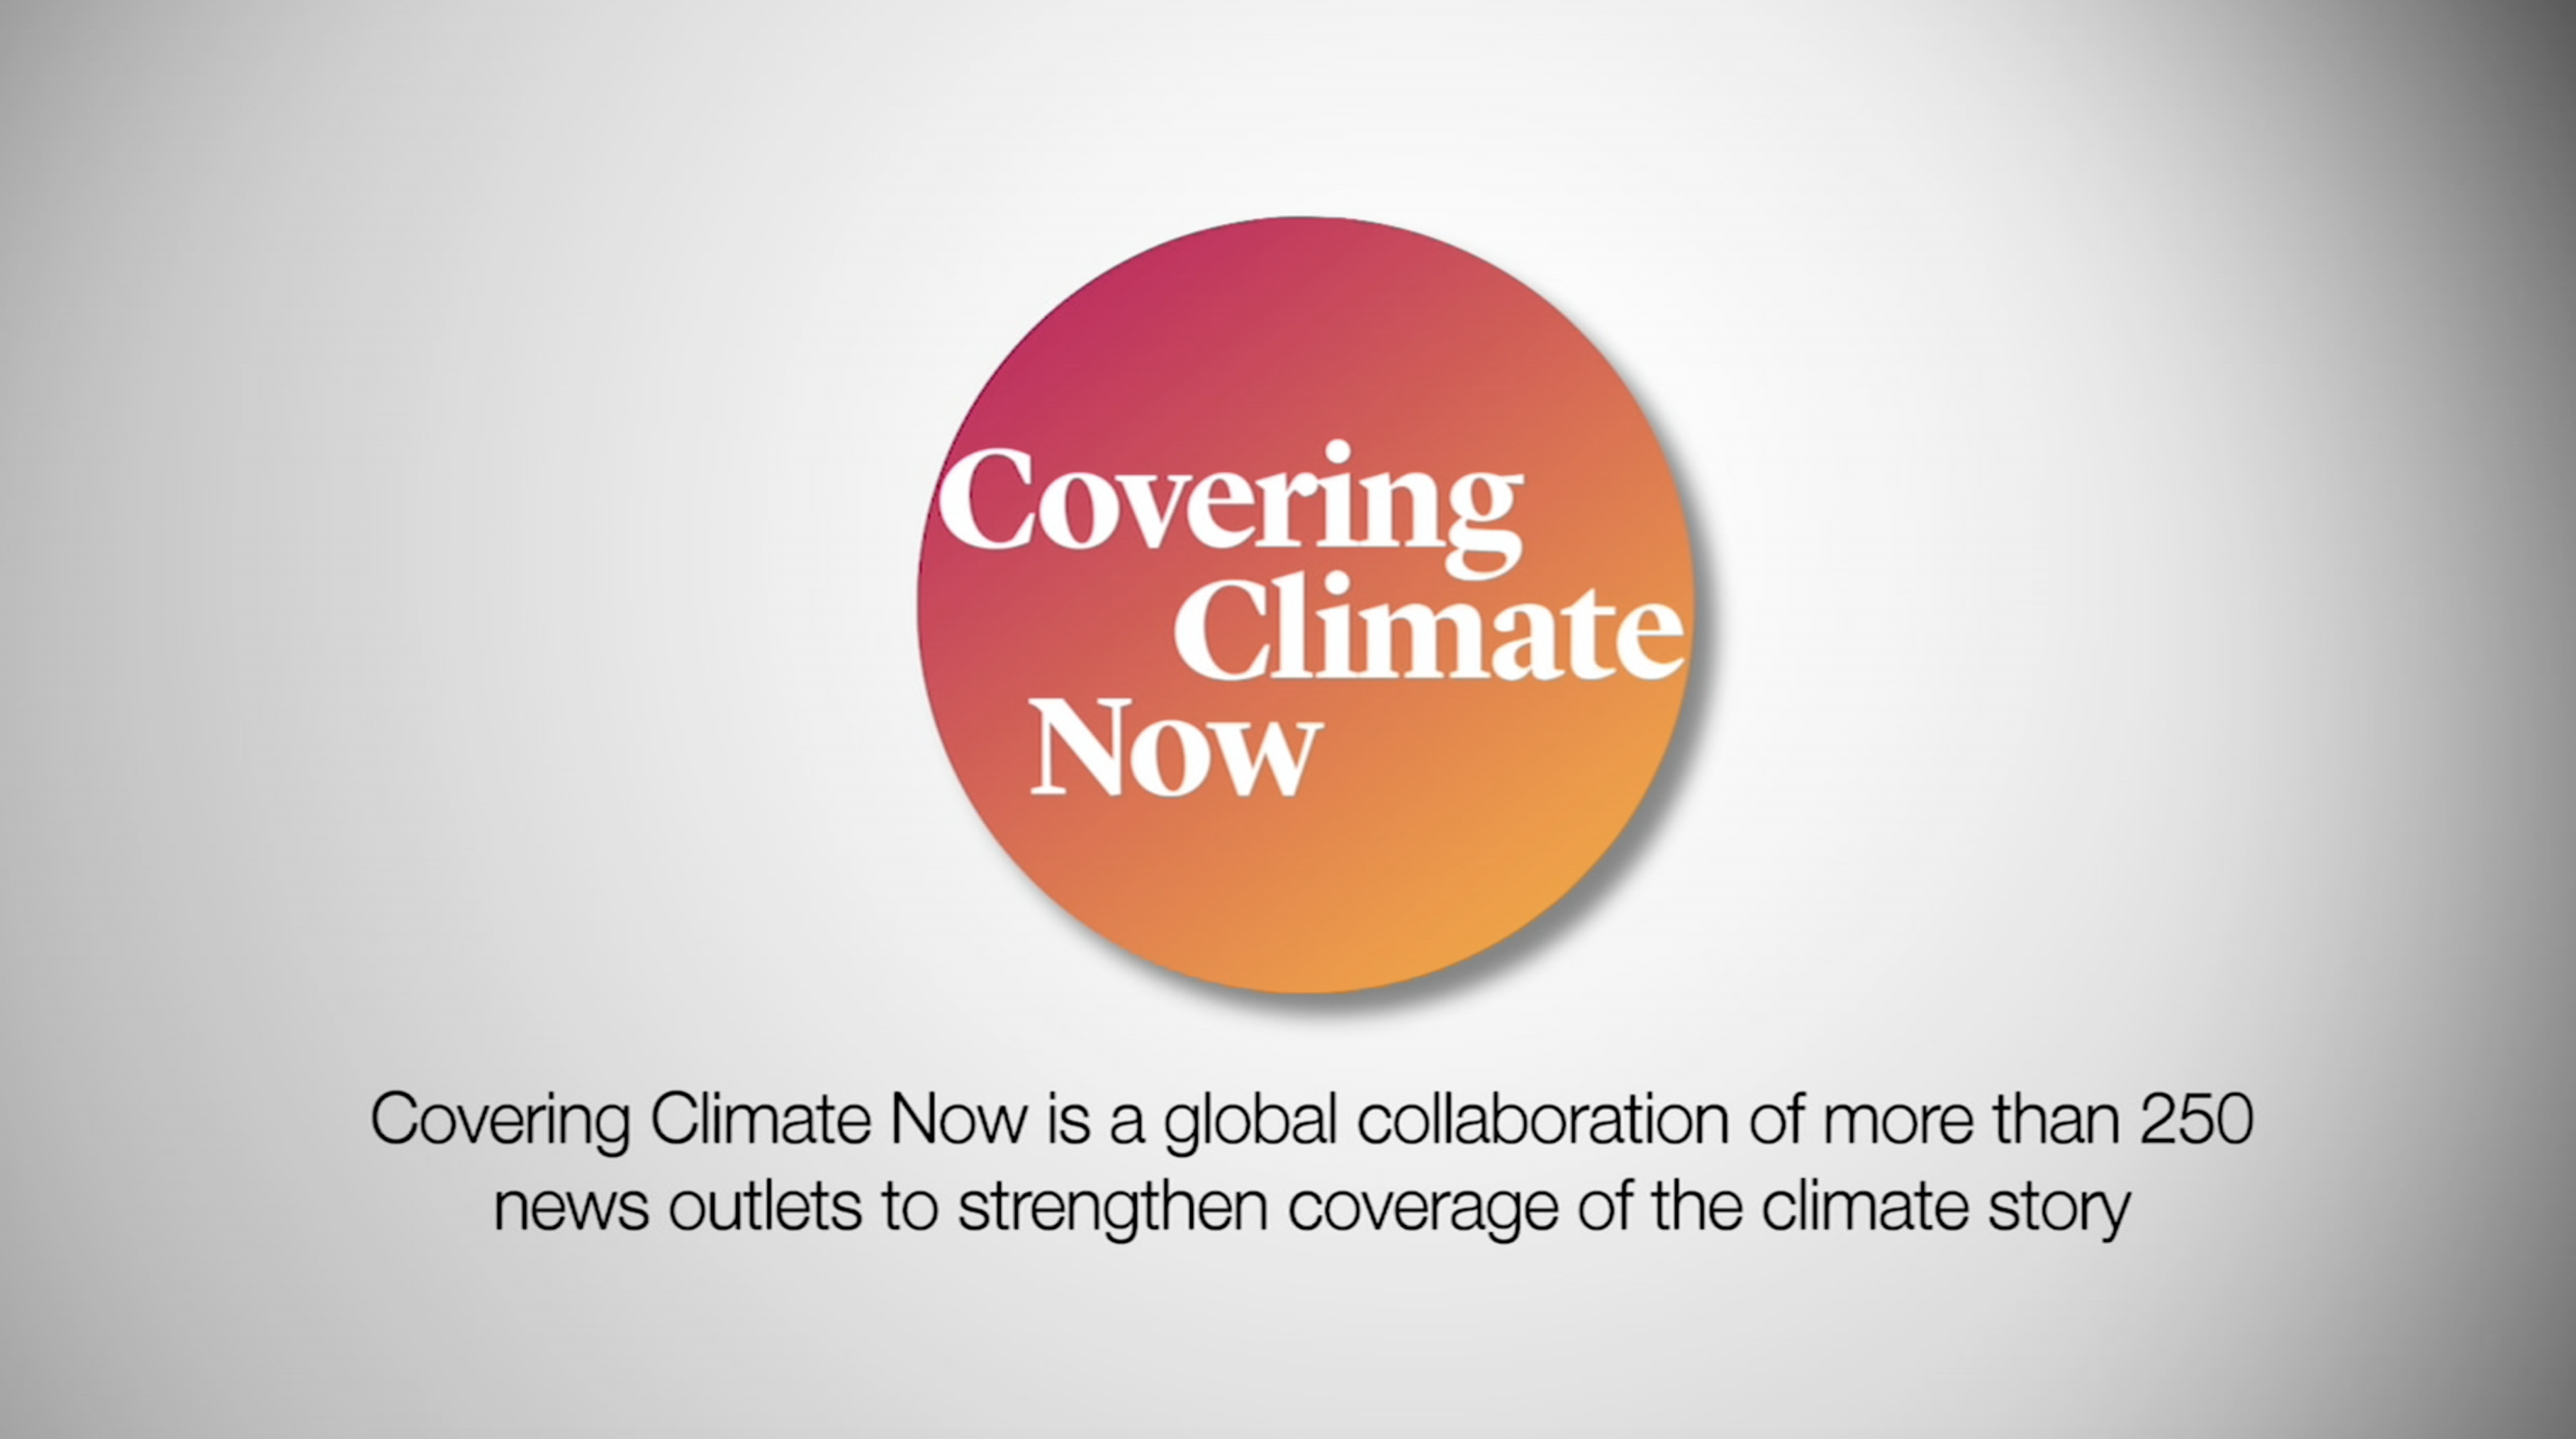 Covering Climate Now is a global collaboration of more than 250 news outlets to strengthen coverage of the climate story